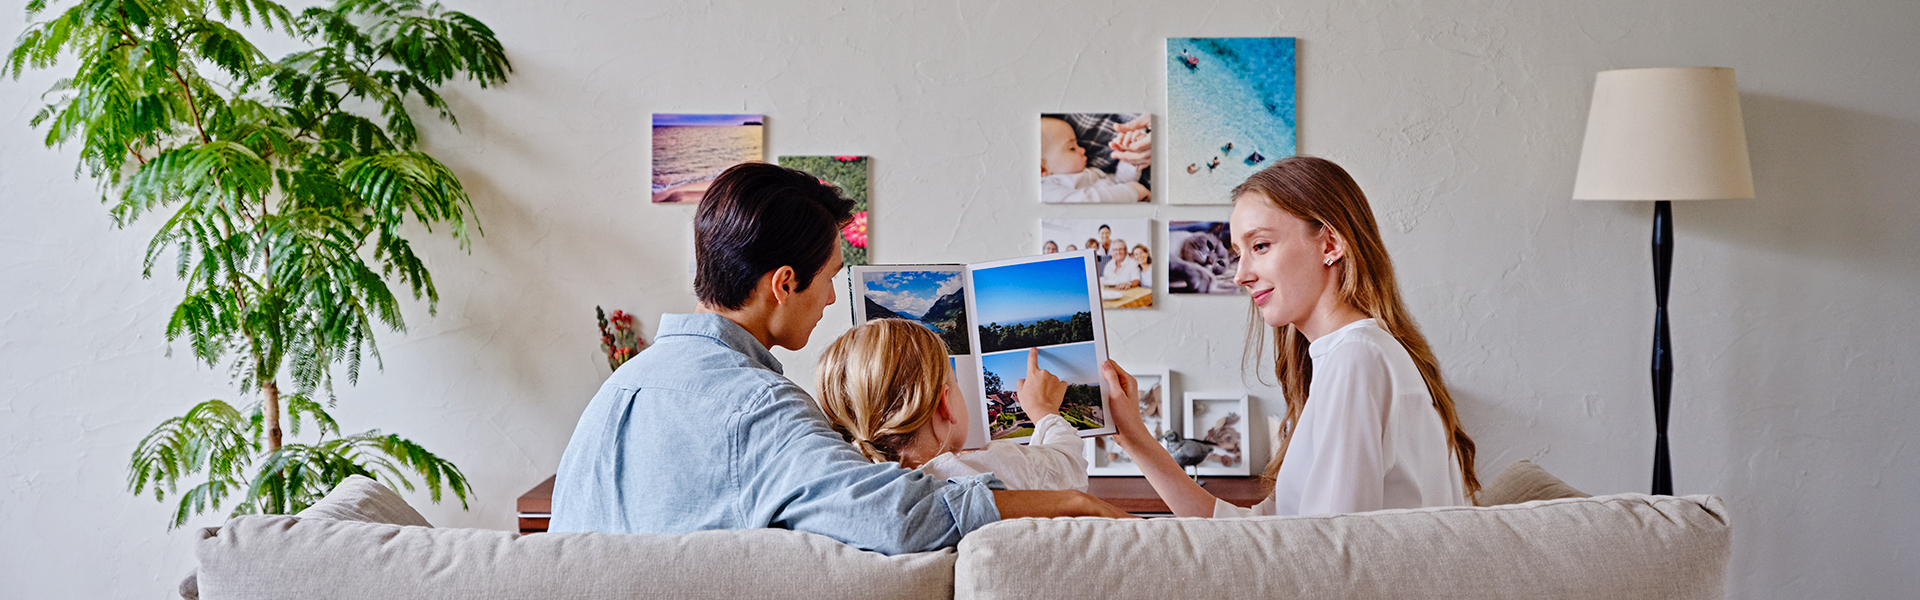 [photo] A young family of 3 sitting on a couch, looking through a photo album and facing a wall of family pictures